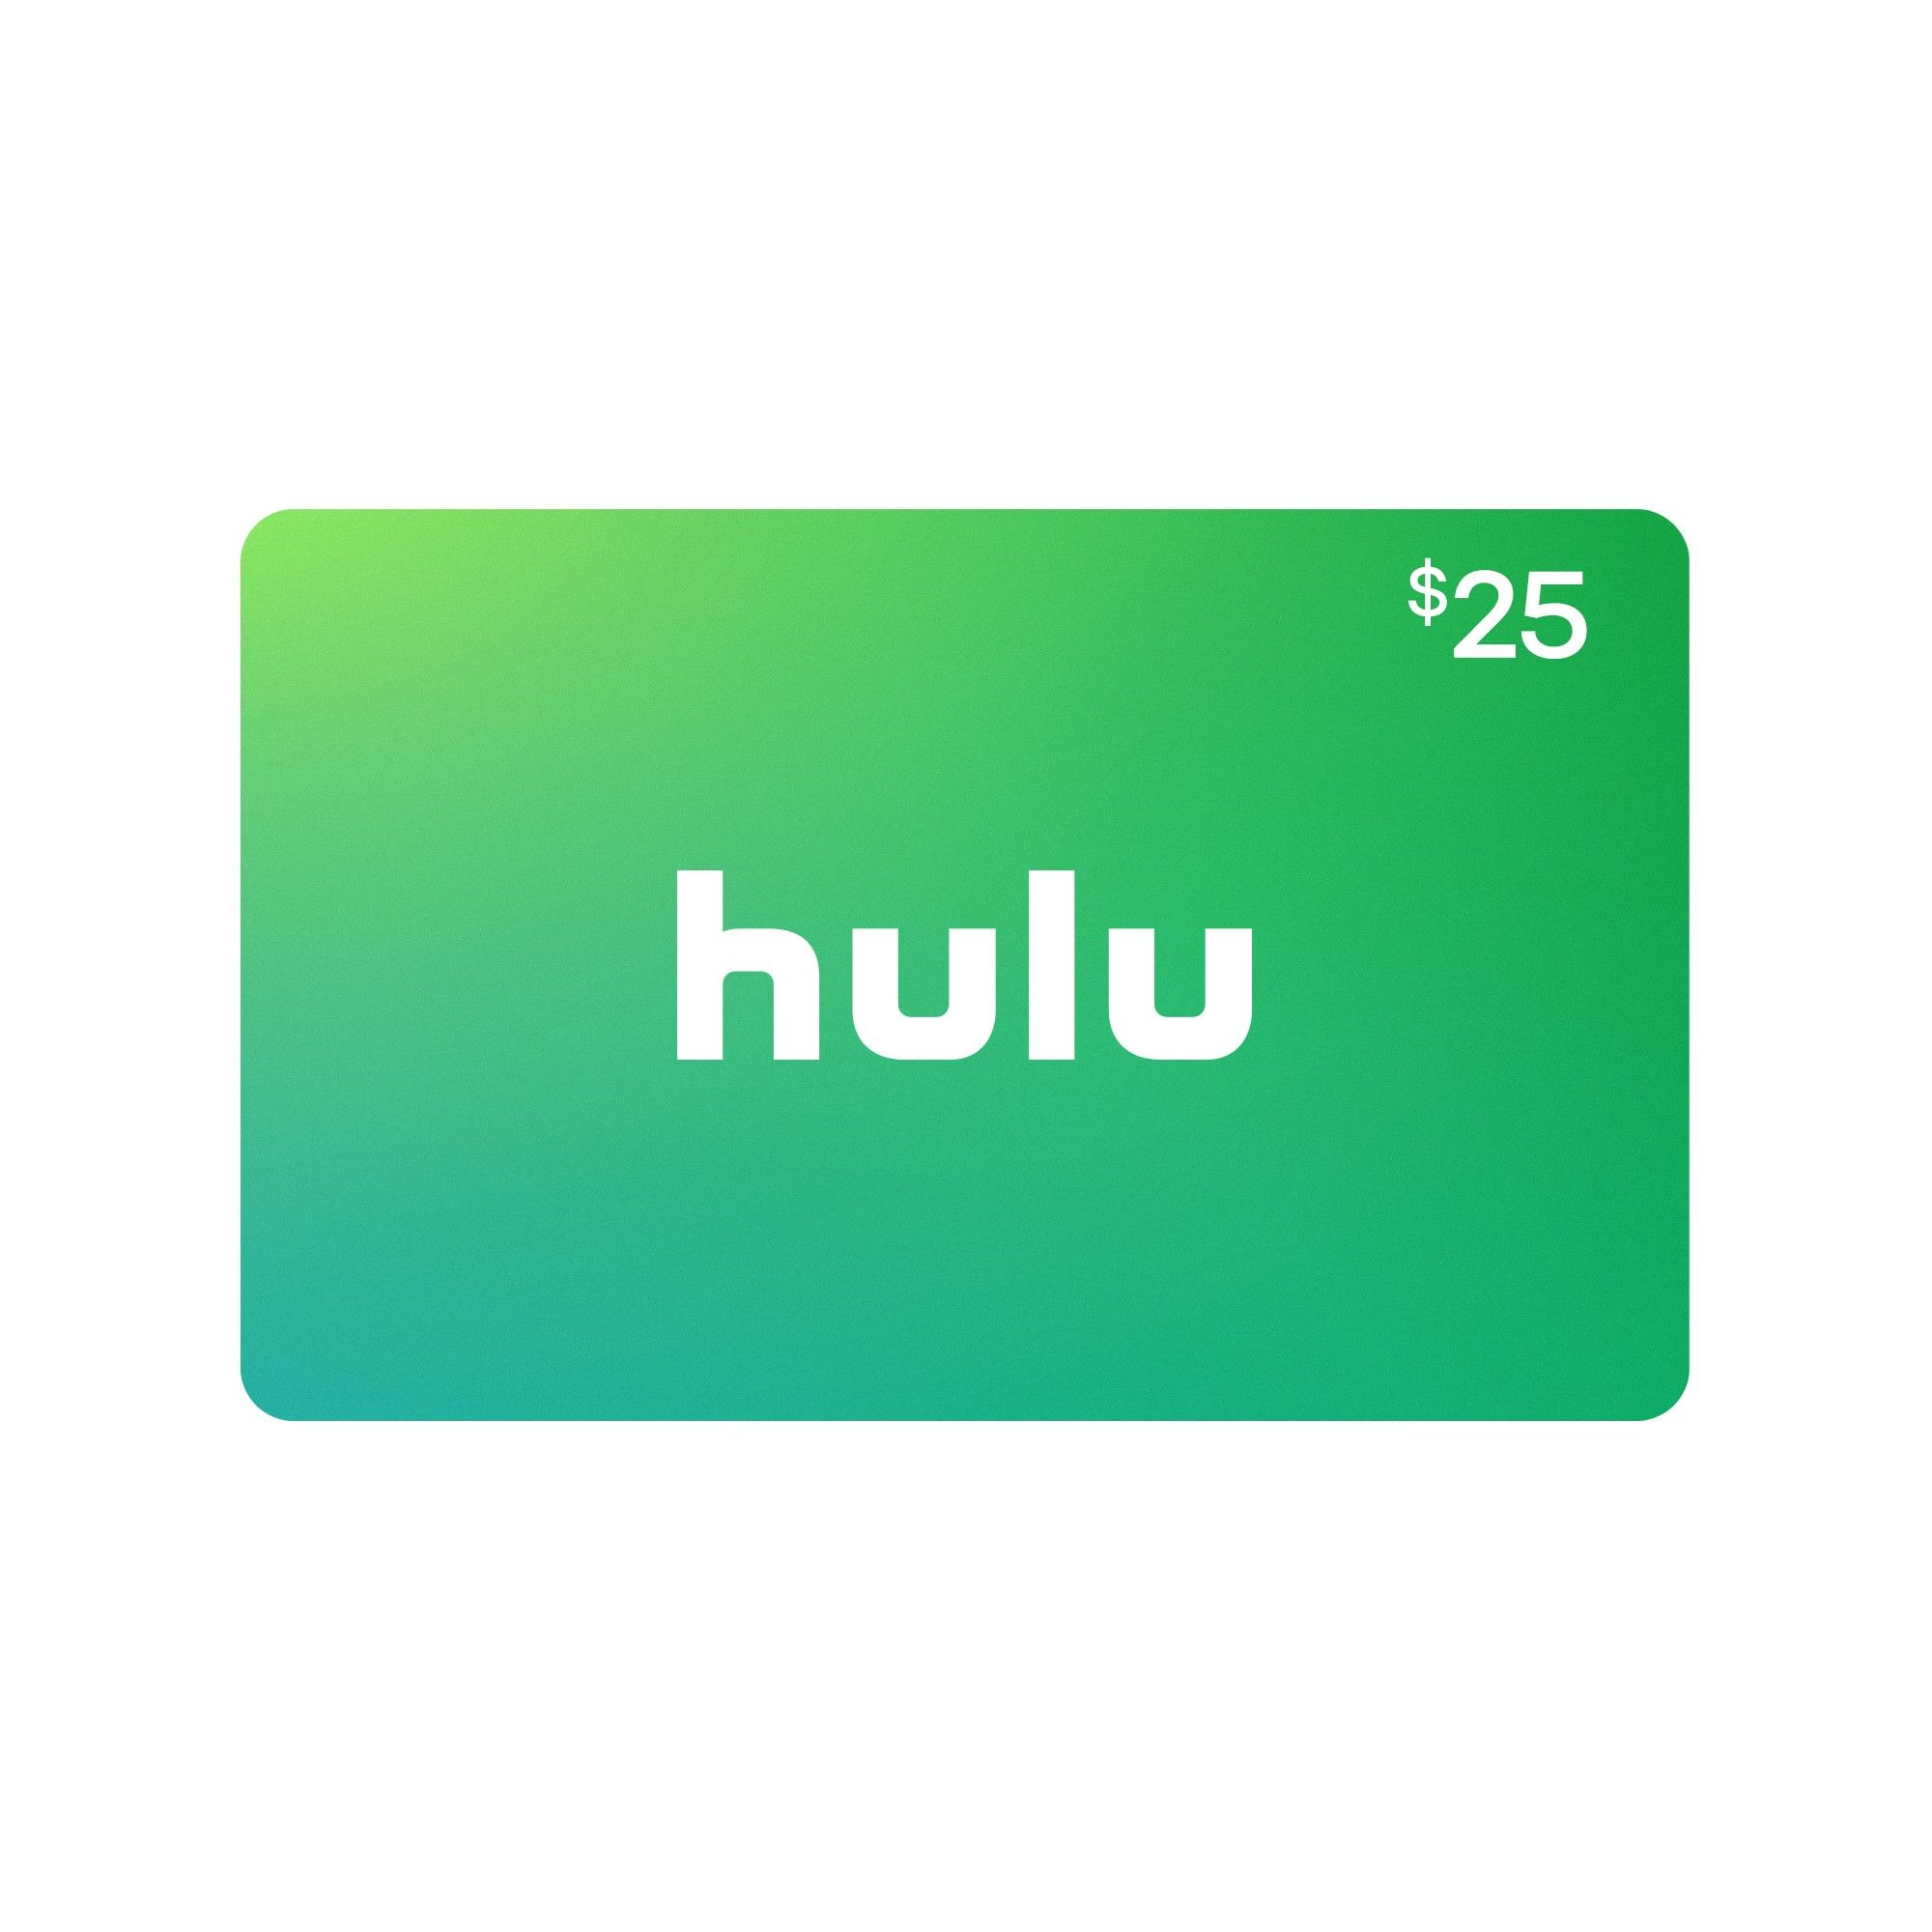 Hulu 25 Email Delivery Hulu Gift Card Cards